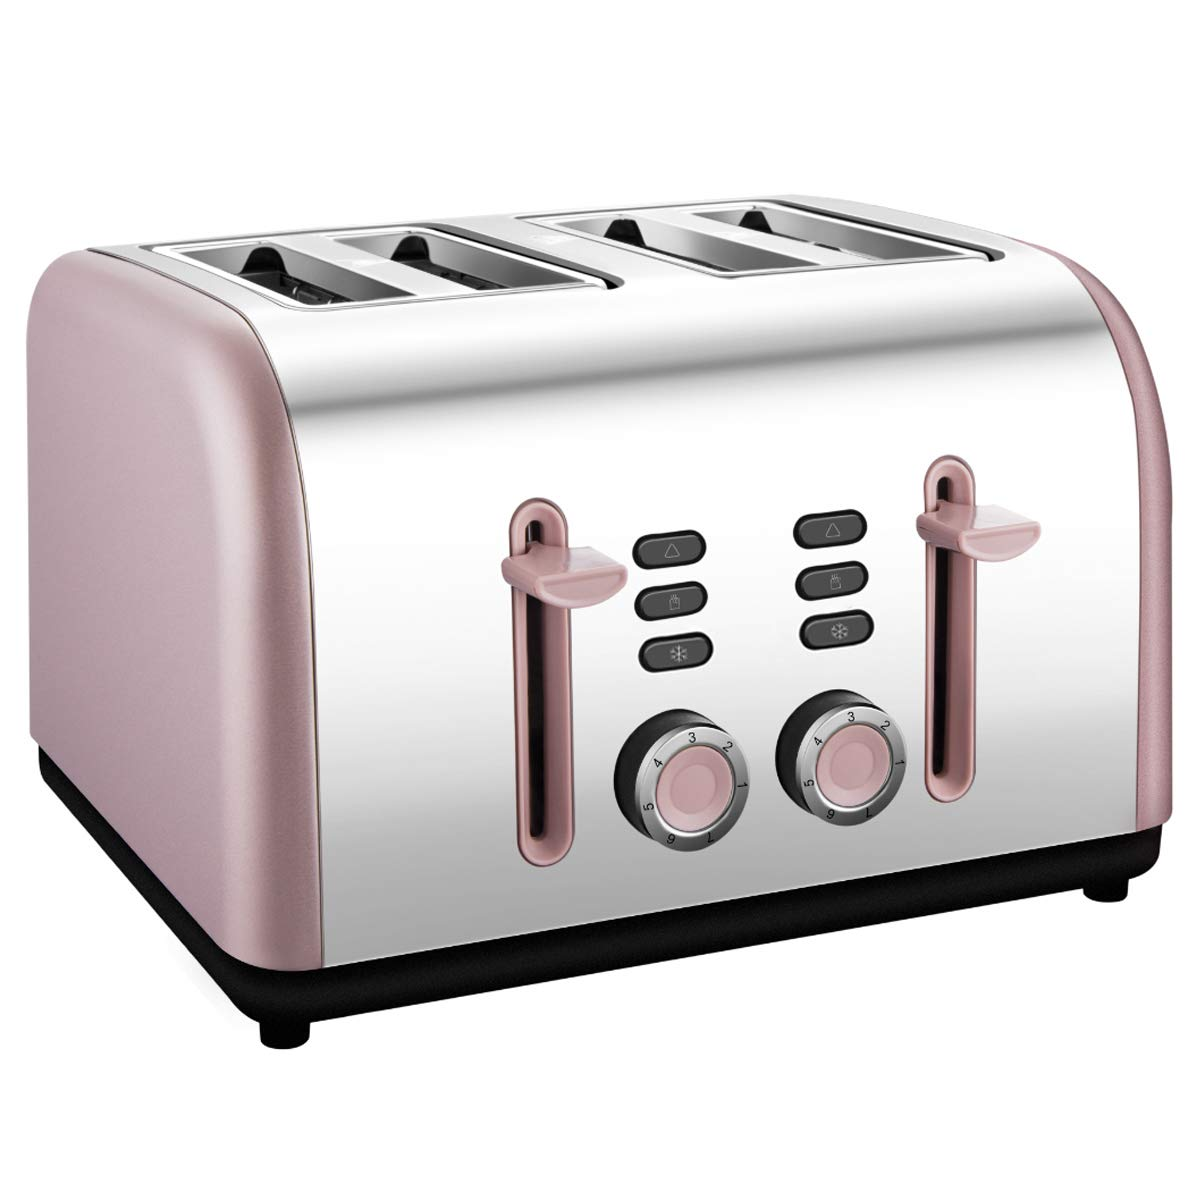 4 Slice toaster, Extra Wide Toaster 4 Slice Stainless Steel with Defrost/Reheat/Cancel/Quick Buttons 7 Browning Settings, 1400W, Rose Gold